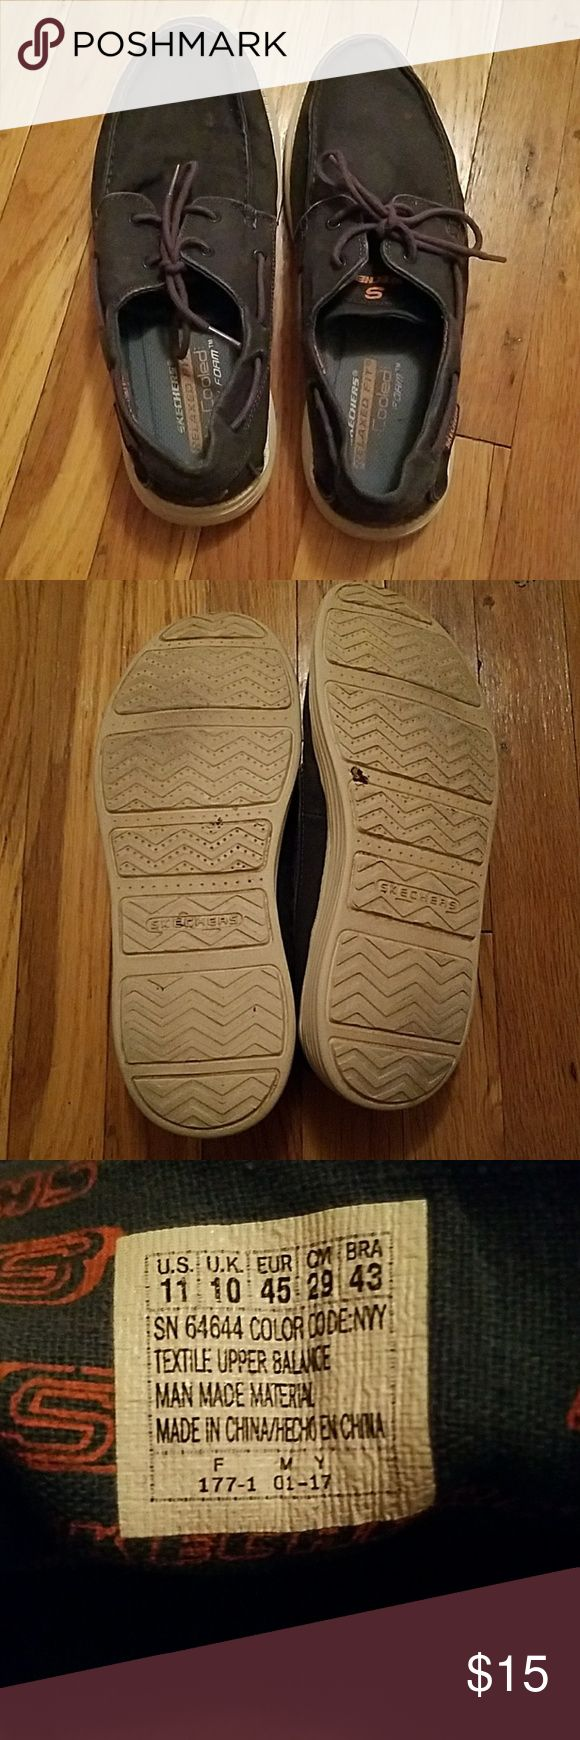 Skechers Men shoes Men's Skechers shoes. These shoes are good to wear with a nice pair of pants or shorts/jeans. Have been worn a few times but in great condition. Add to a bundle Skechers Shoes